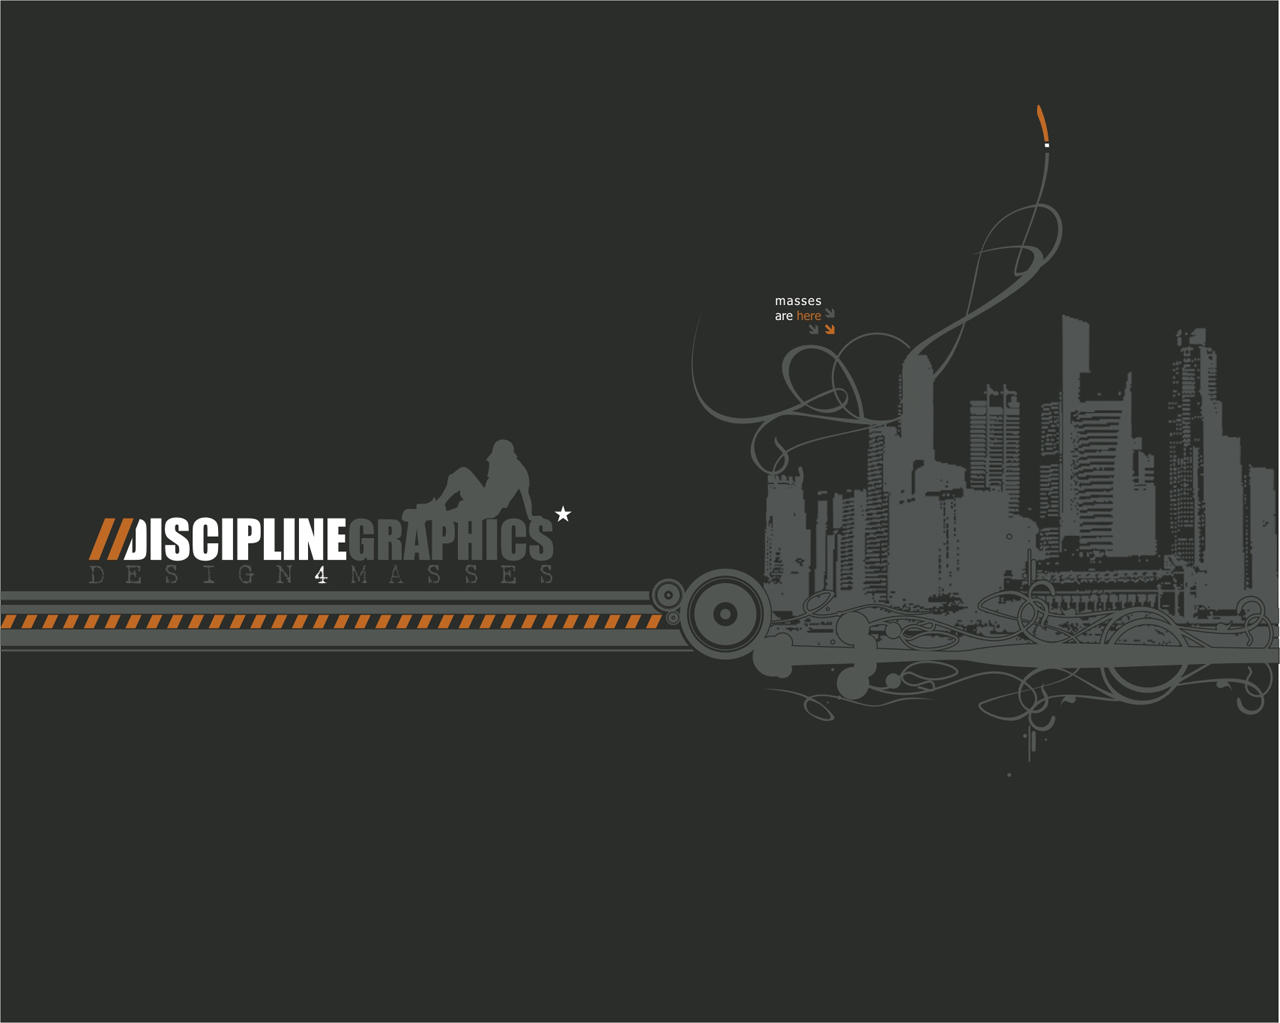 Discpipline Graphics 4 -Beta 1 by jorguna